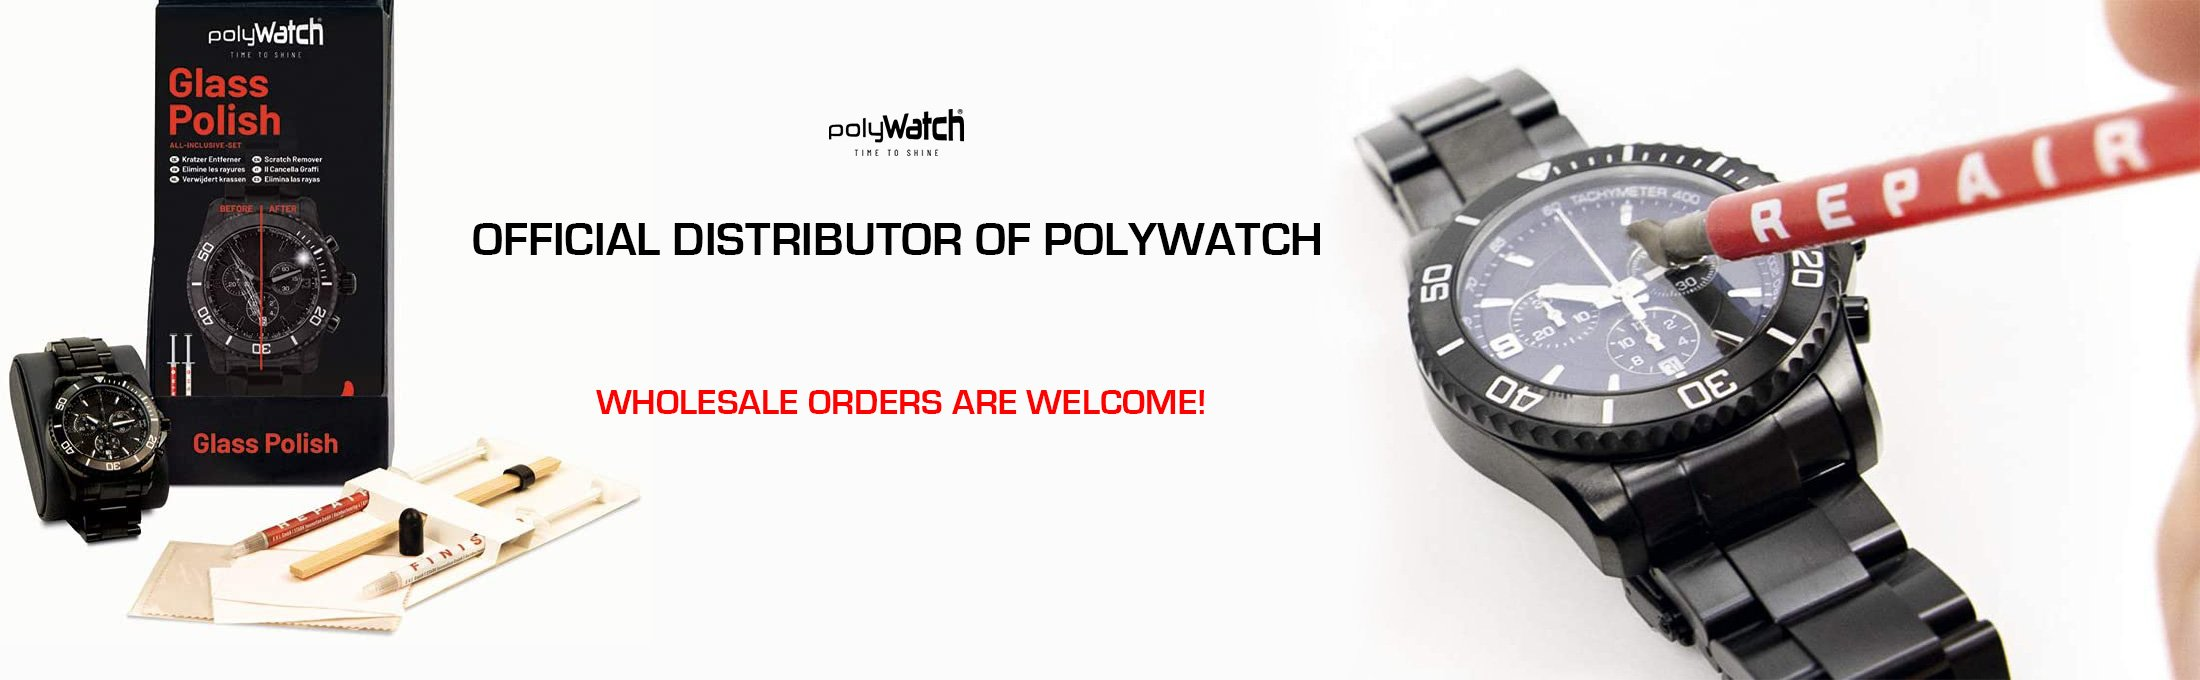 Official distributor of Polywatch